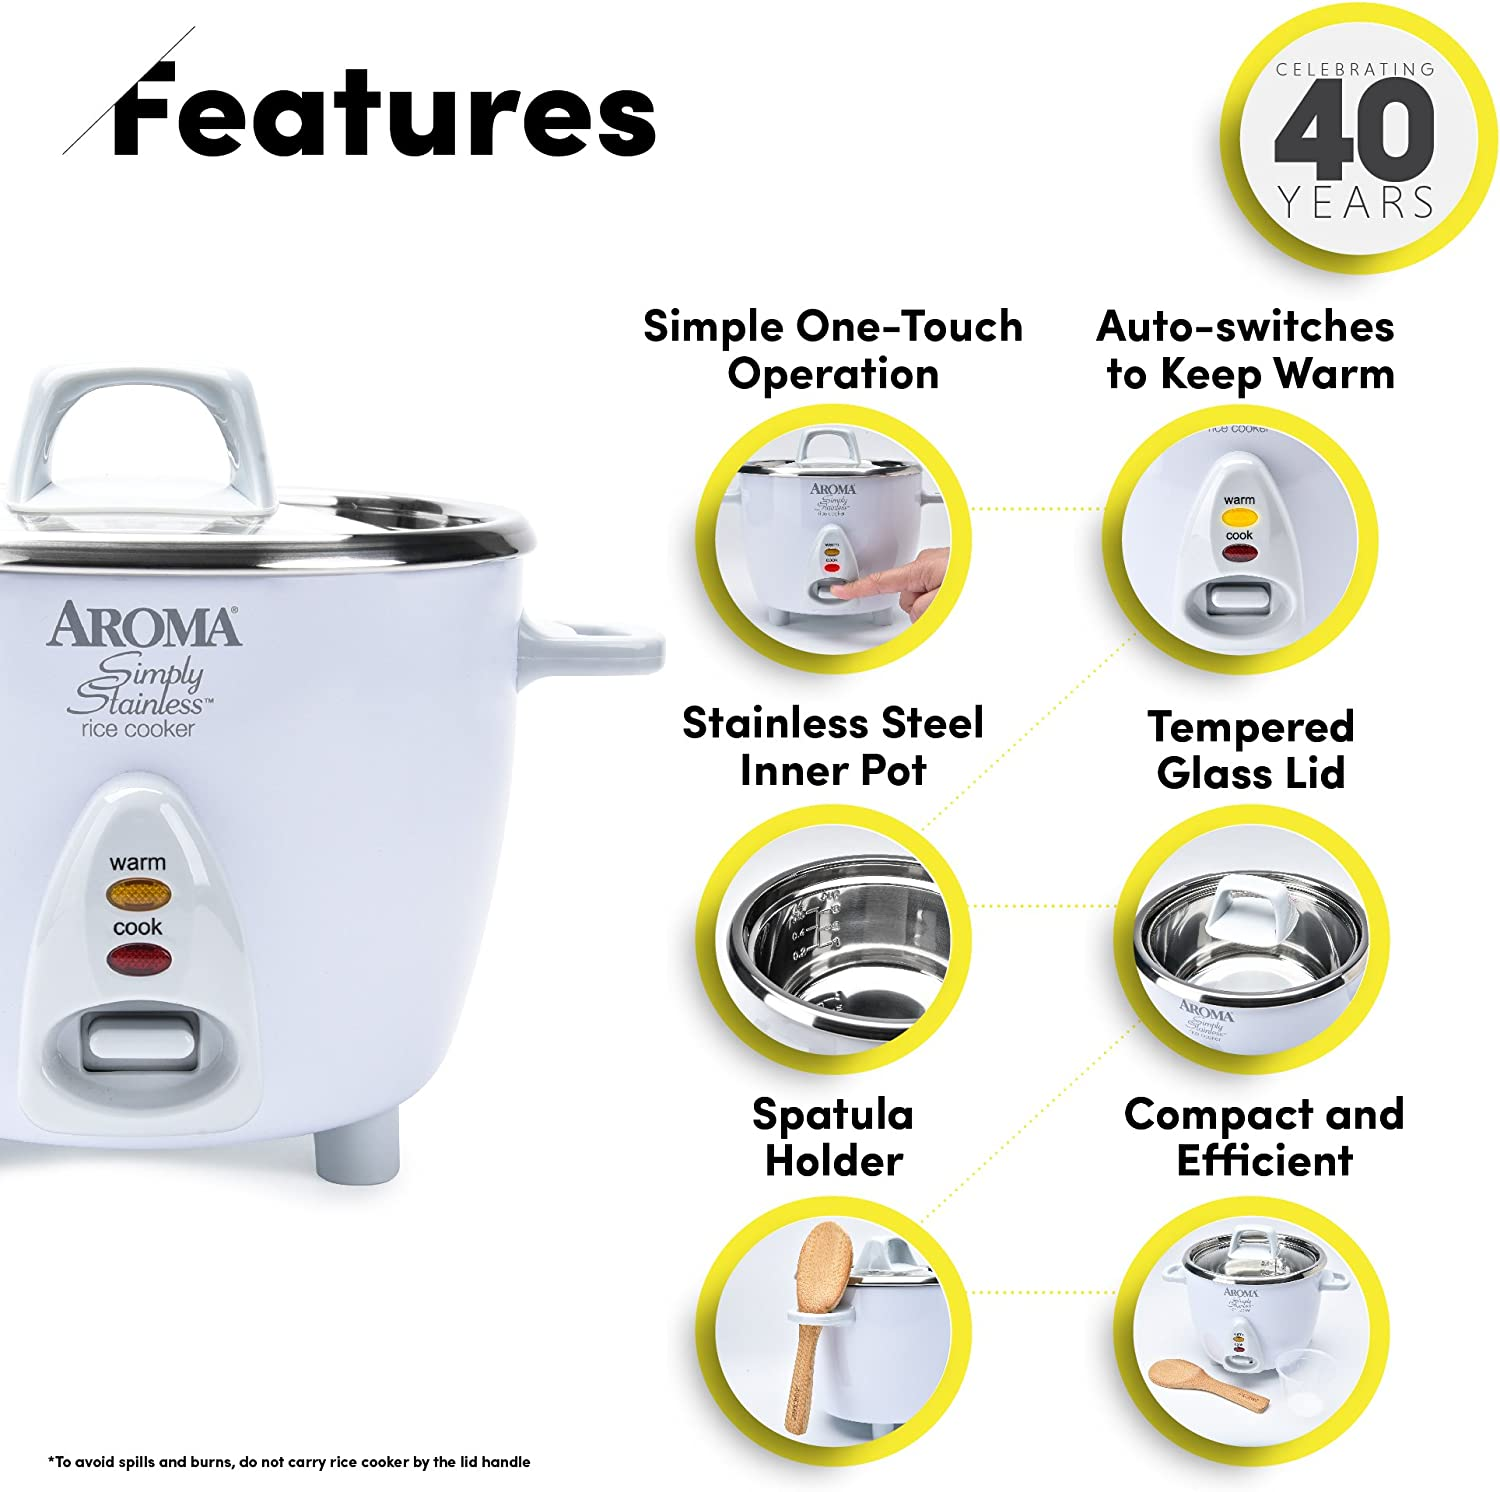 Aroma Housewares Simply Stainless 14-Cup Cooked 7-Cup UNCOOKED Rice Cooker, Stainless Steel Inner Pot ARC-757SG